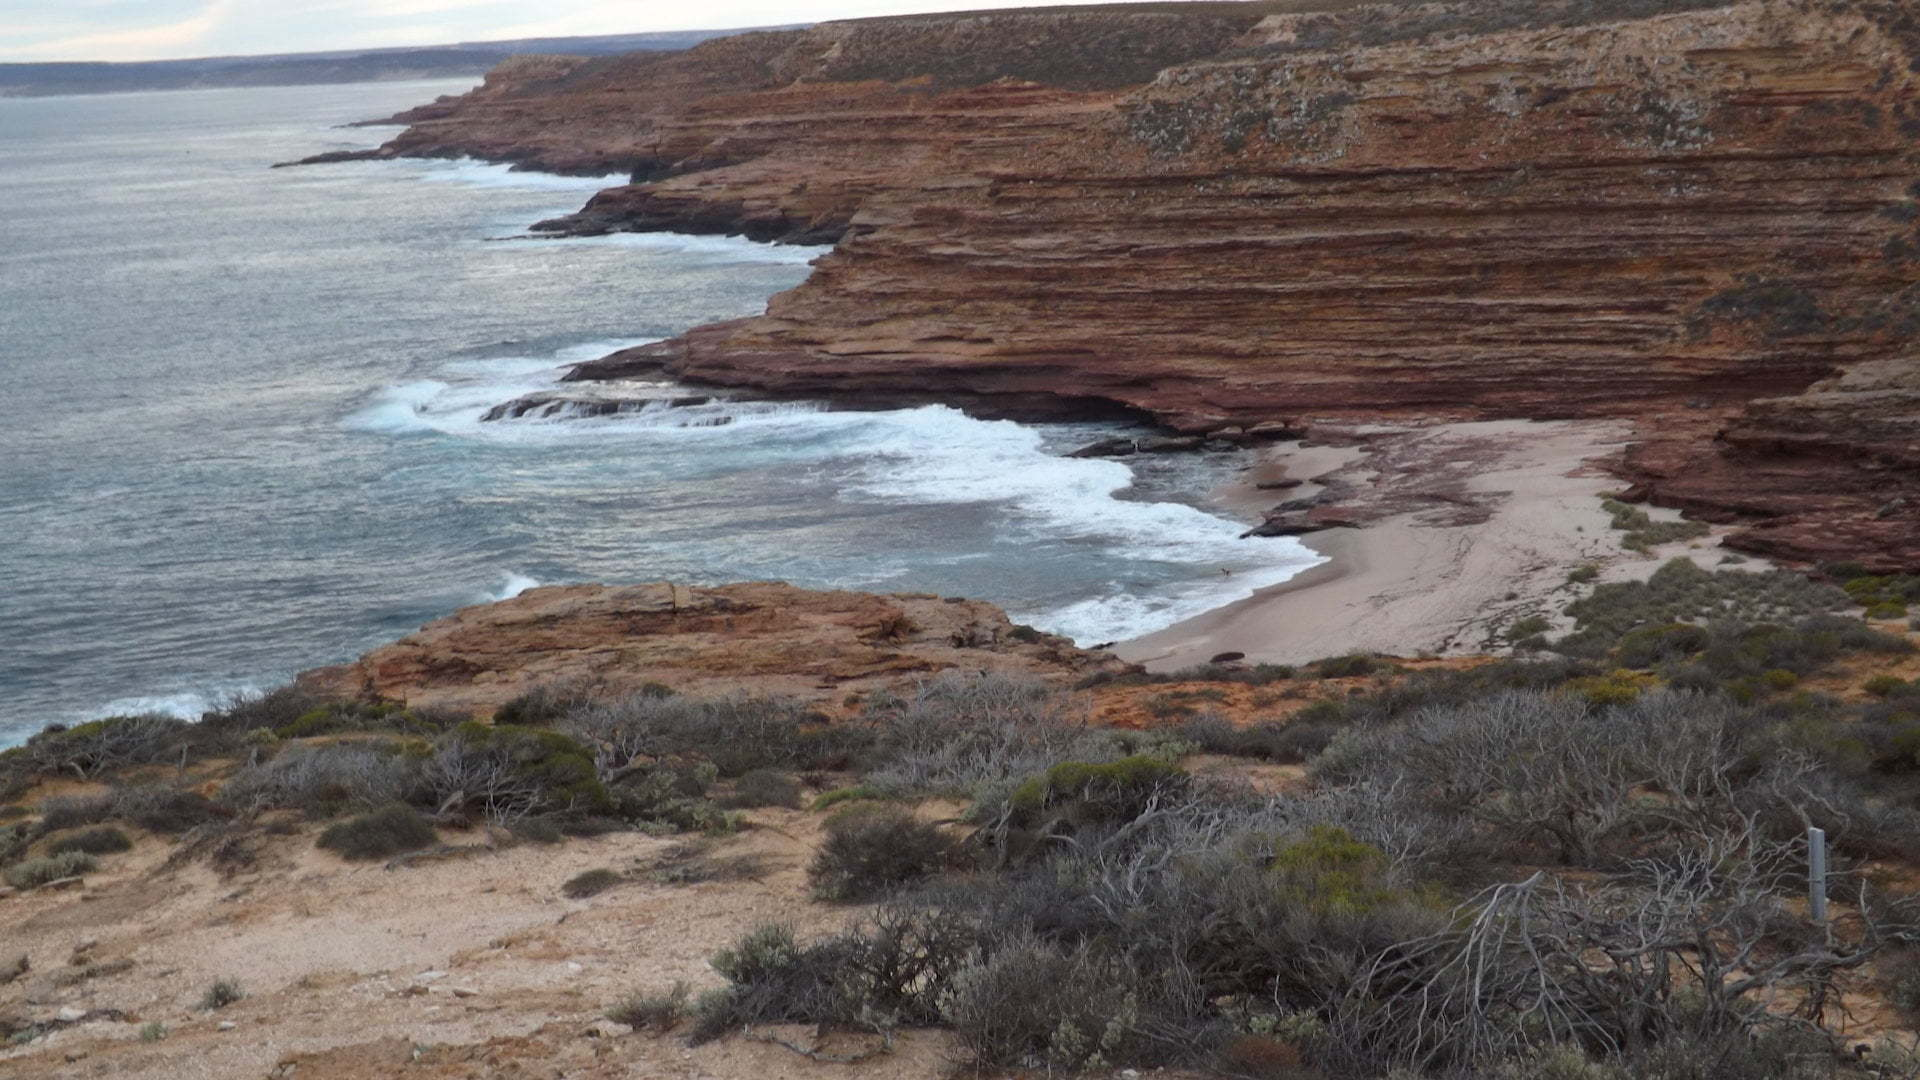 Red sandstone cliffs and a beach in a gorge, taken at Eagle Gorge in Kalbarri National Park